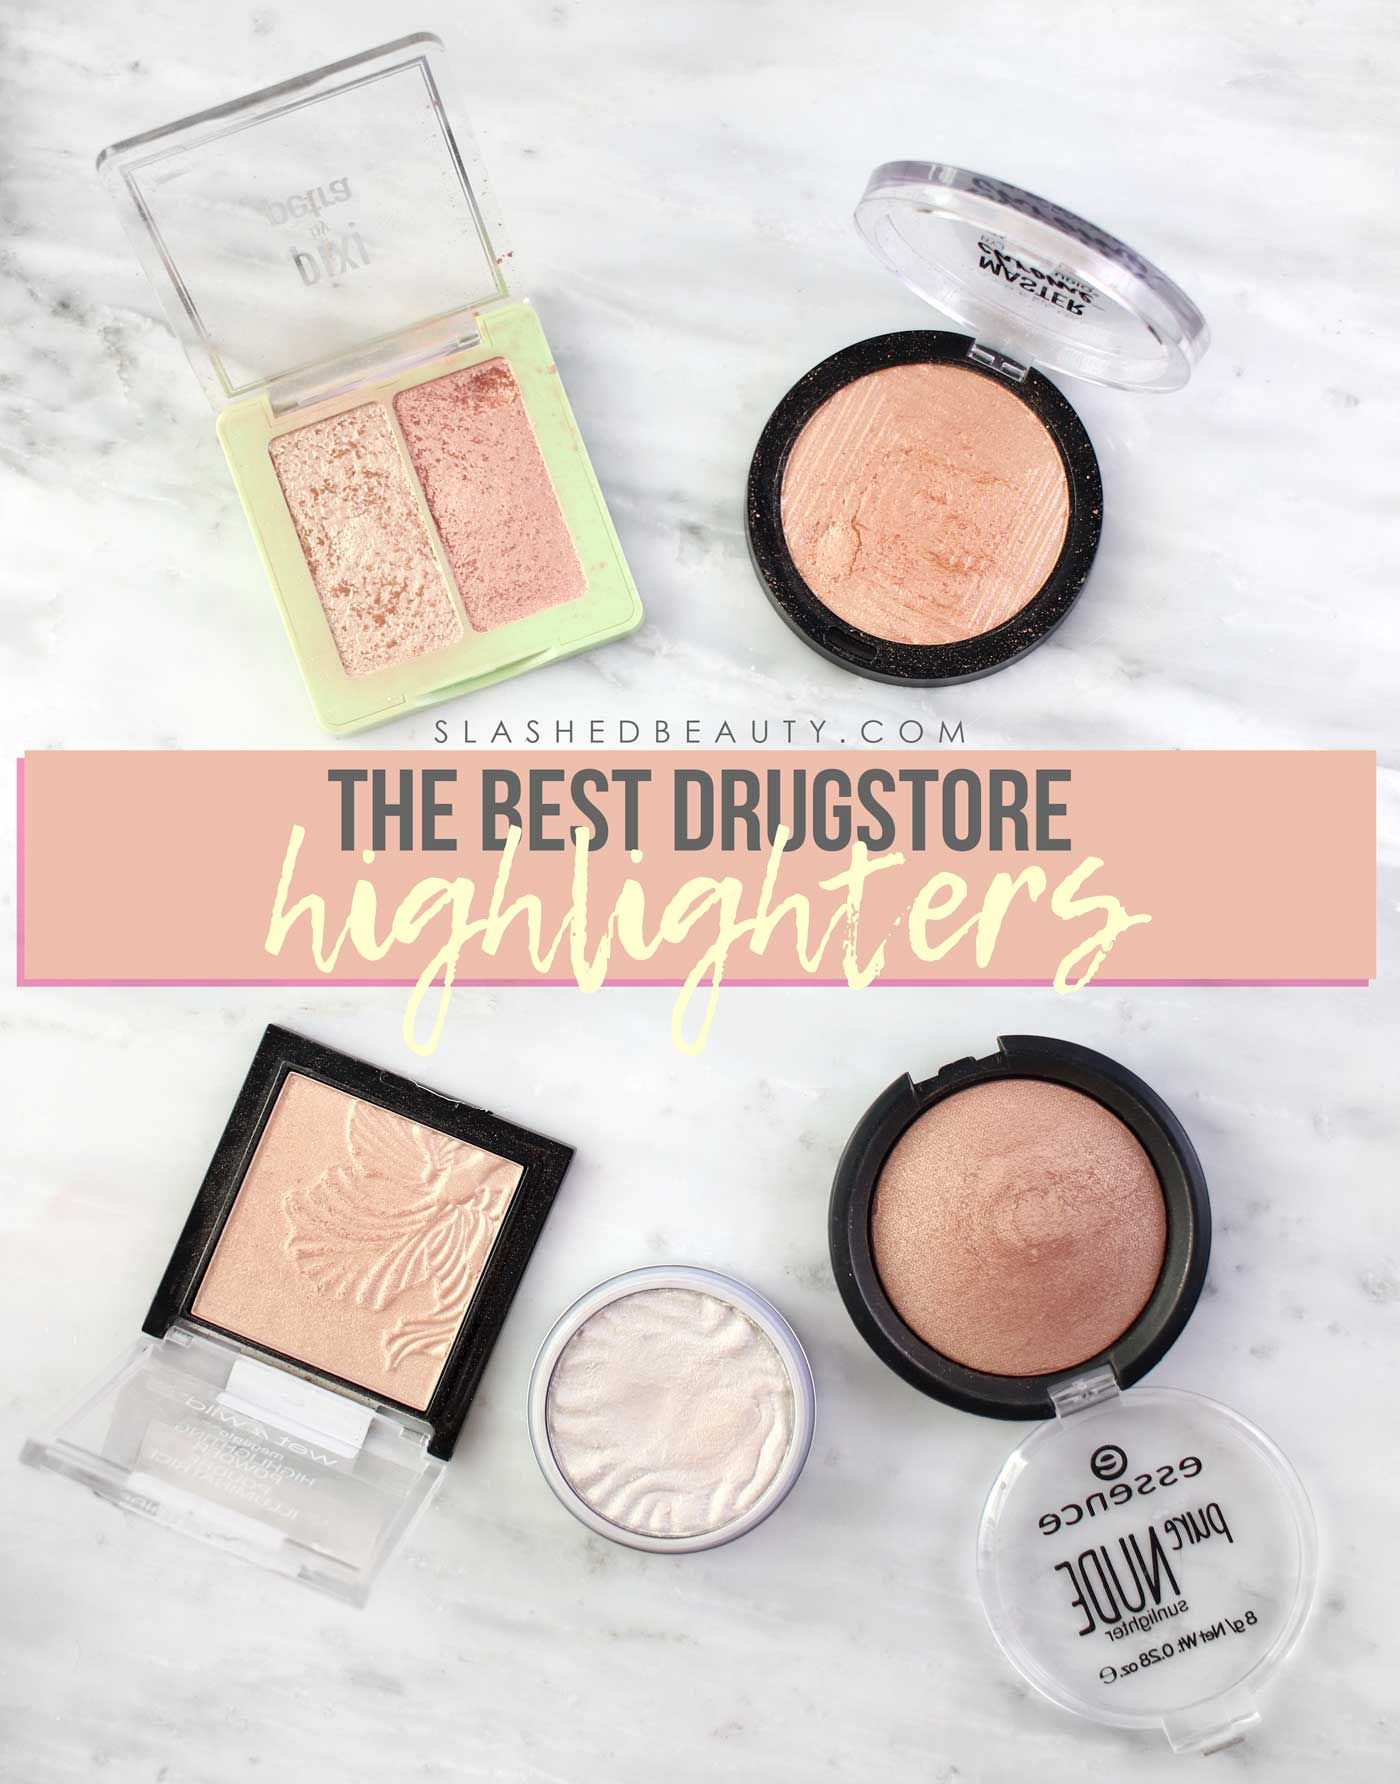 The 5 Best Drugstore Highlighters Powders In 2020 Best Drug Store Highlighter Drugstore Highlighter Highlighter Swatches